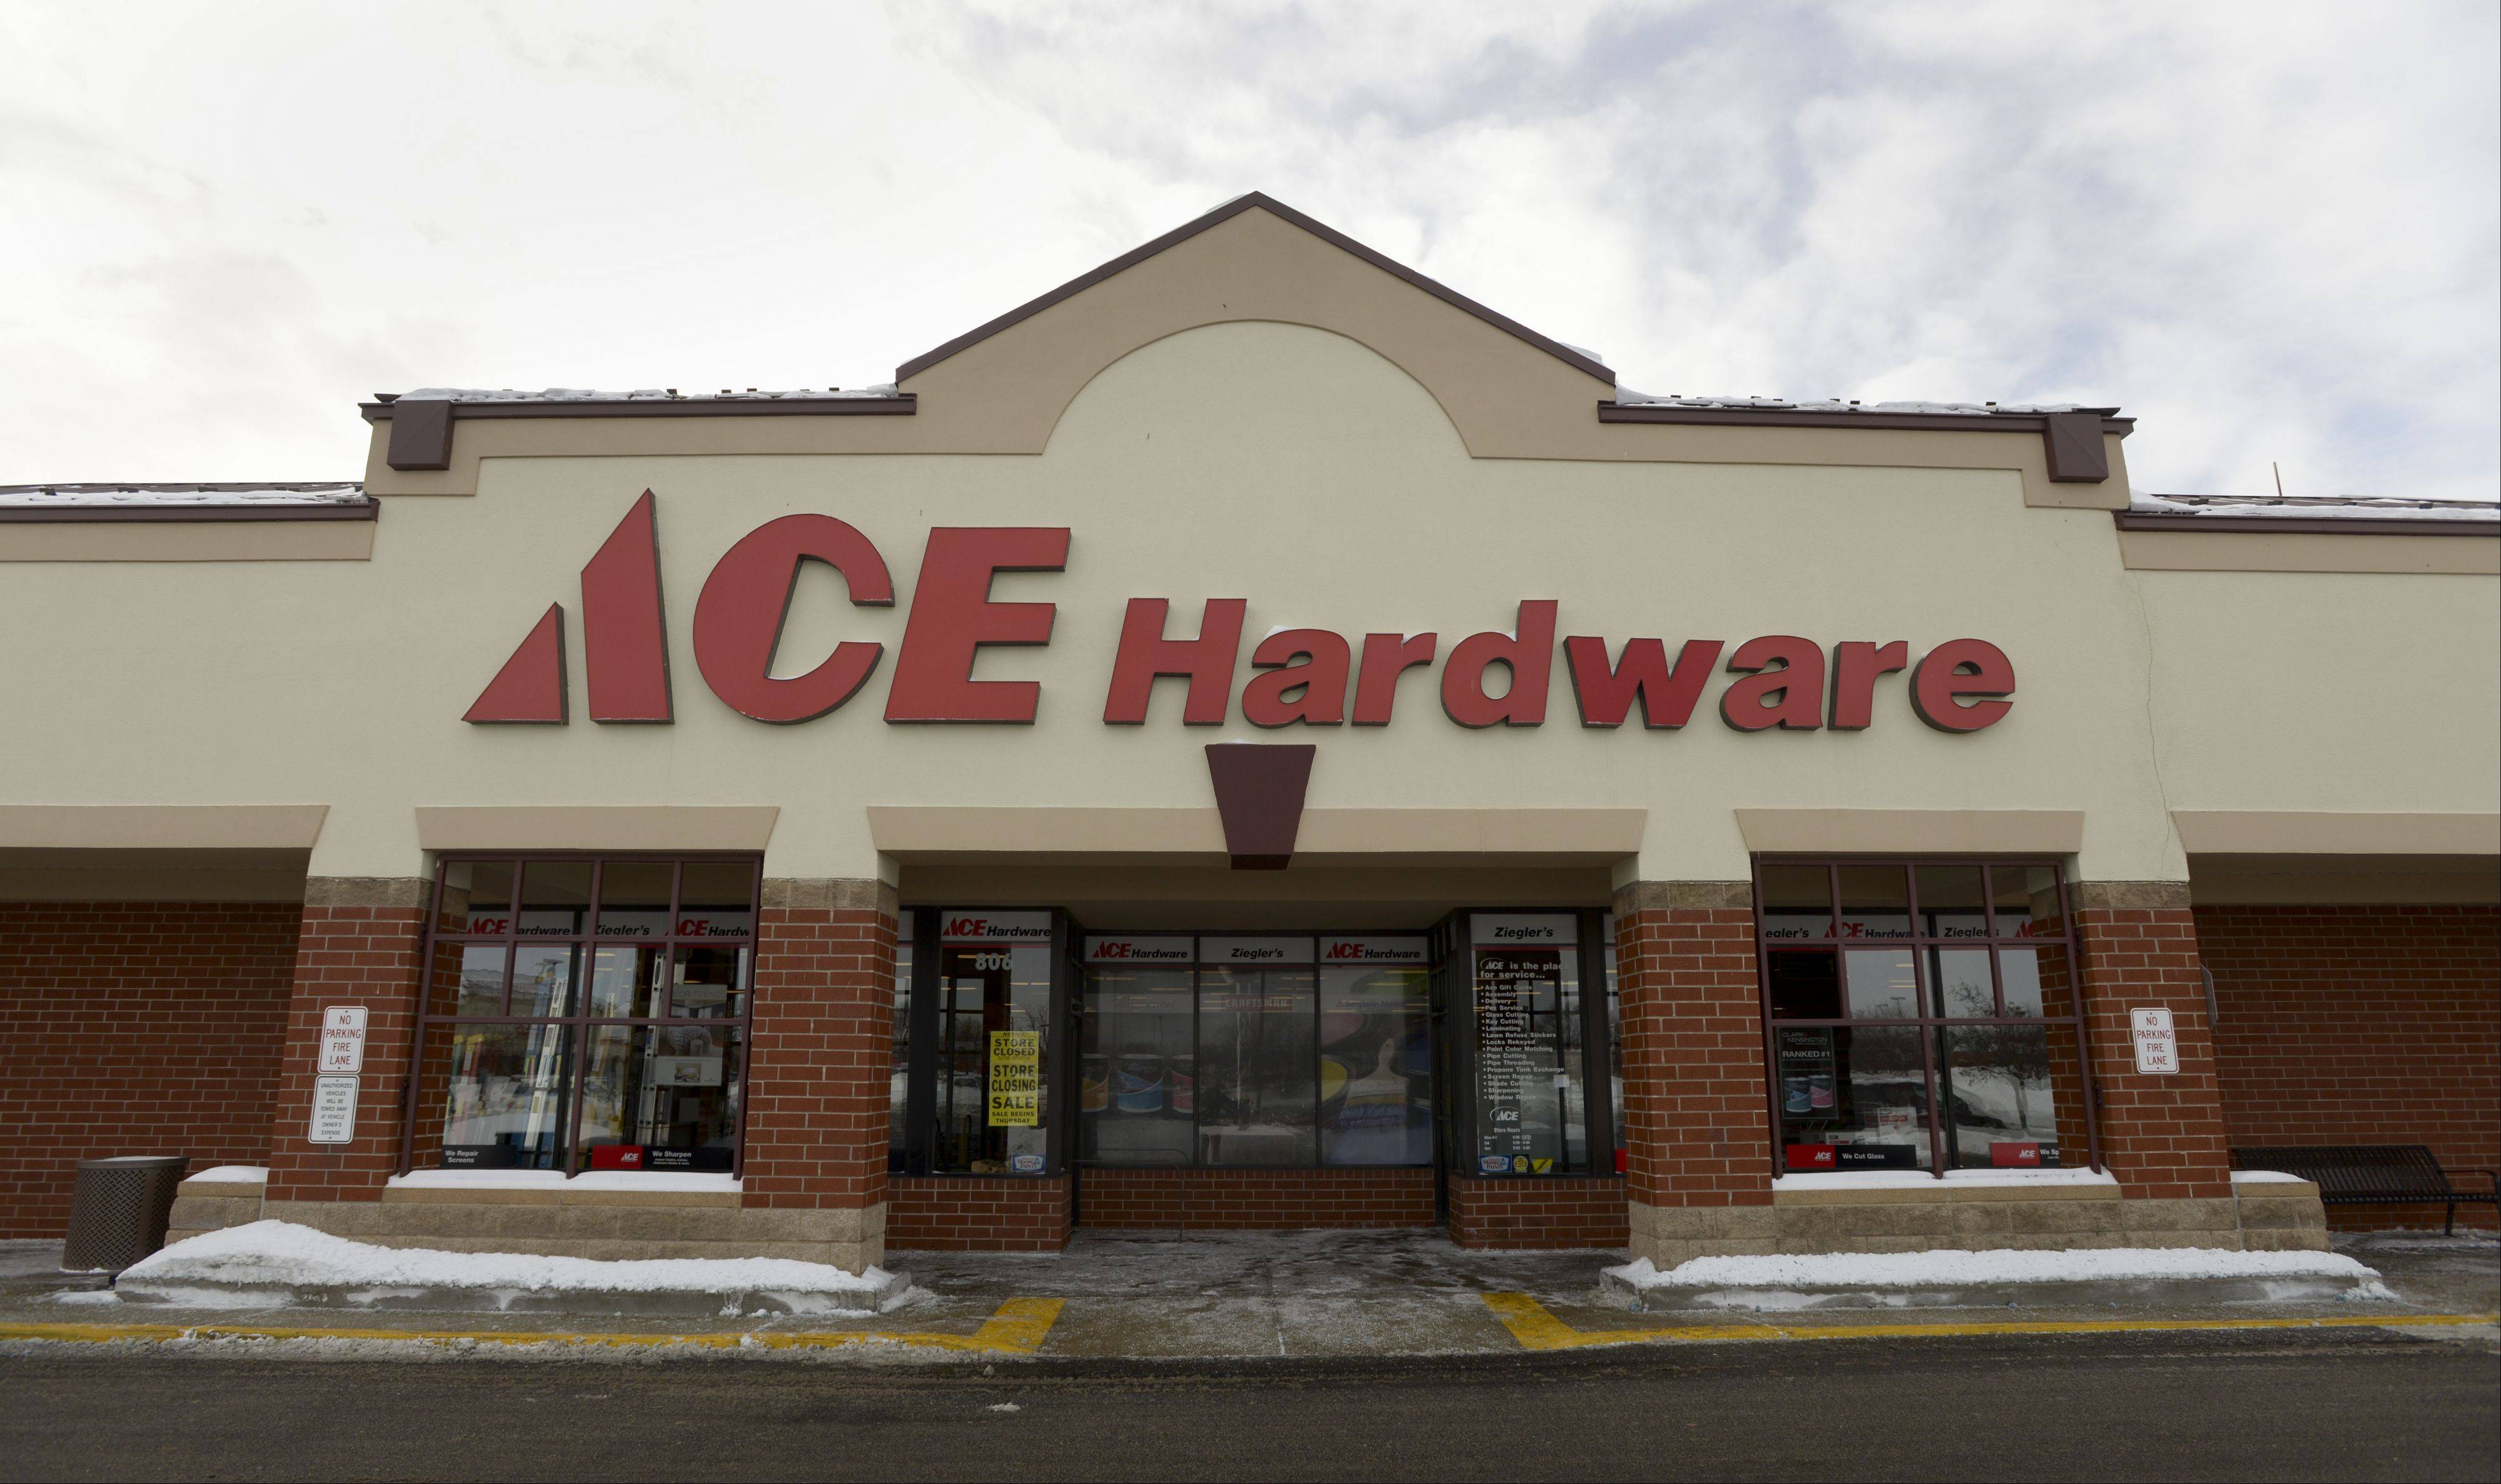 Ziegler's Ace Hardware in Carol Stream is closing after 25 years in the same location. Owner Dave Ziegler said he and his landlord couldn't agree on a lease extension.